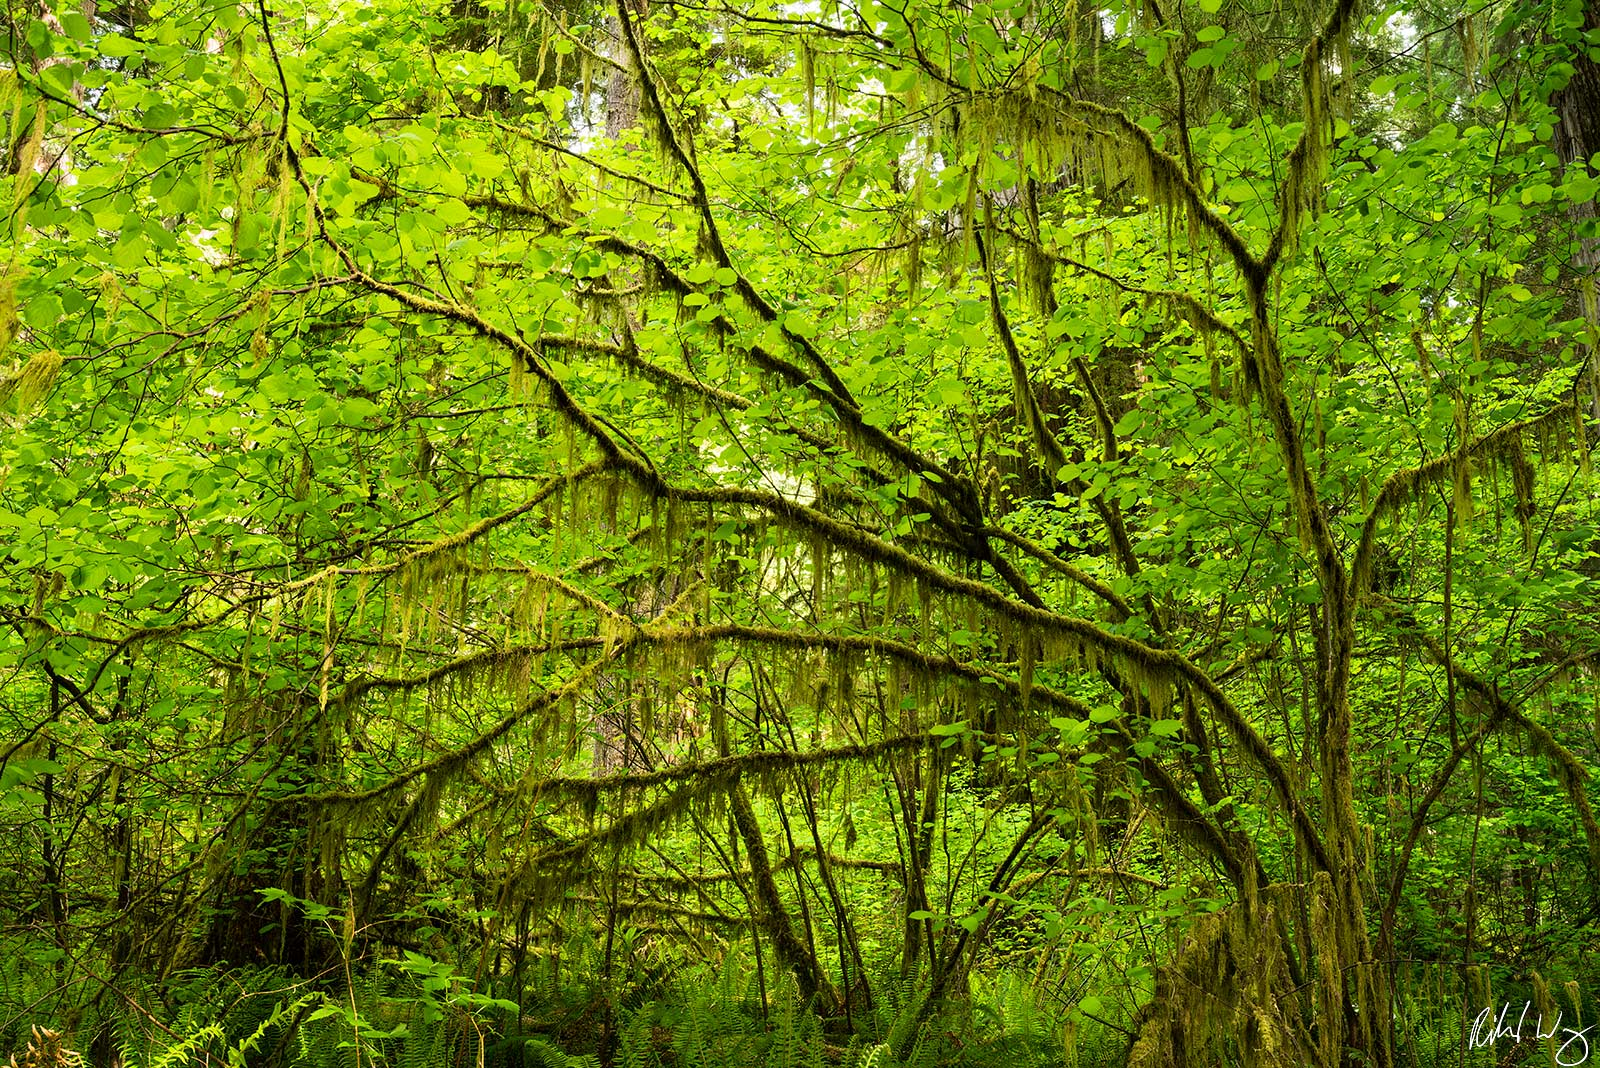 Simpson-Reed Old-Growth Forest, Jedediah Smith Redwoods State Park, California, Photo